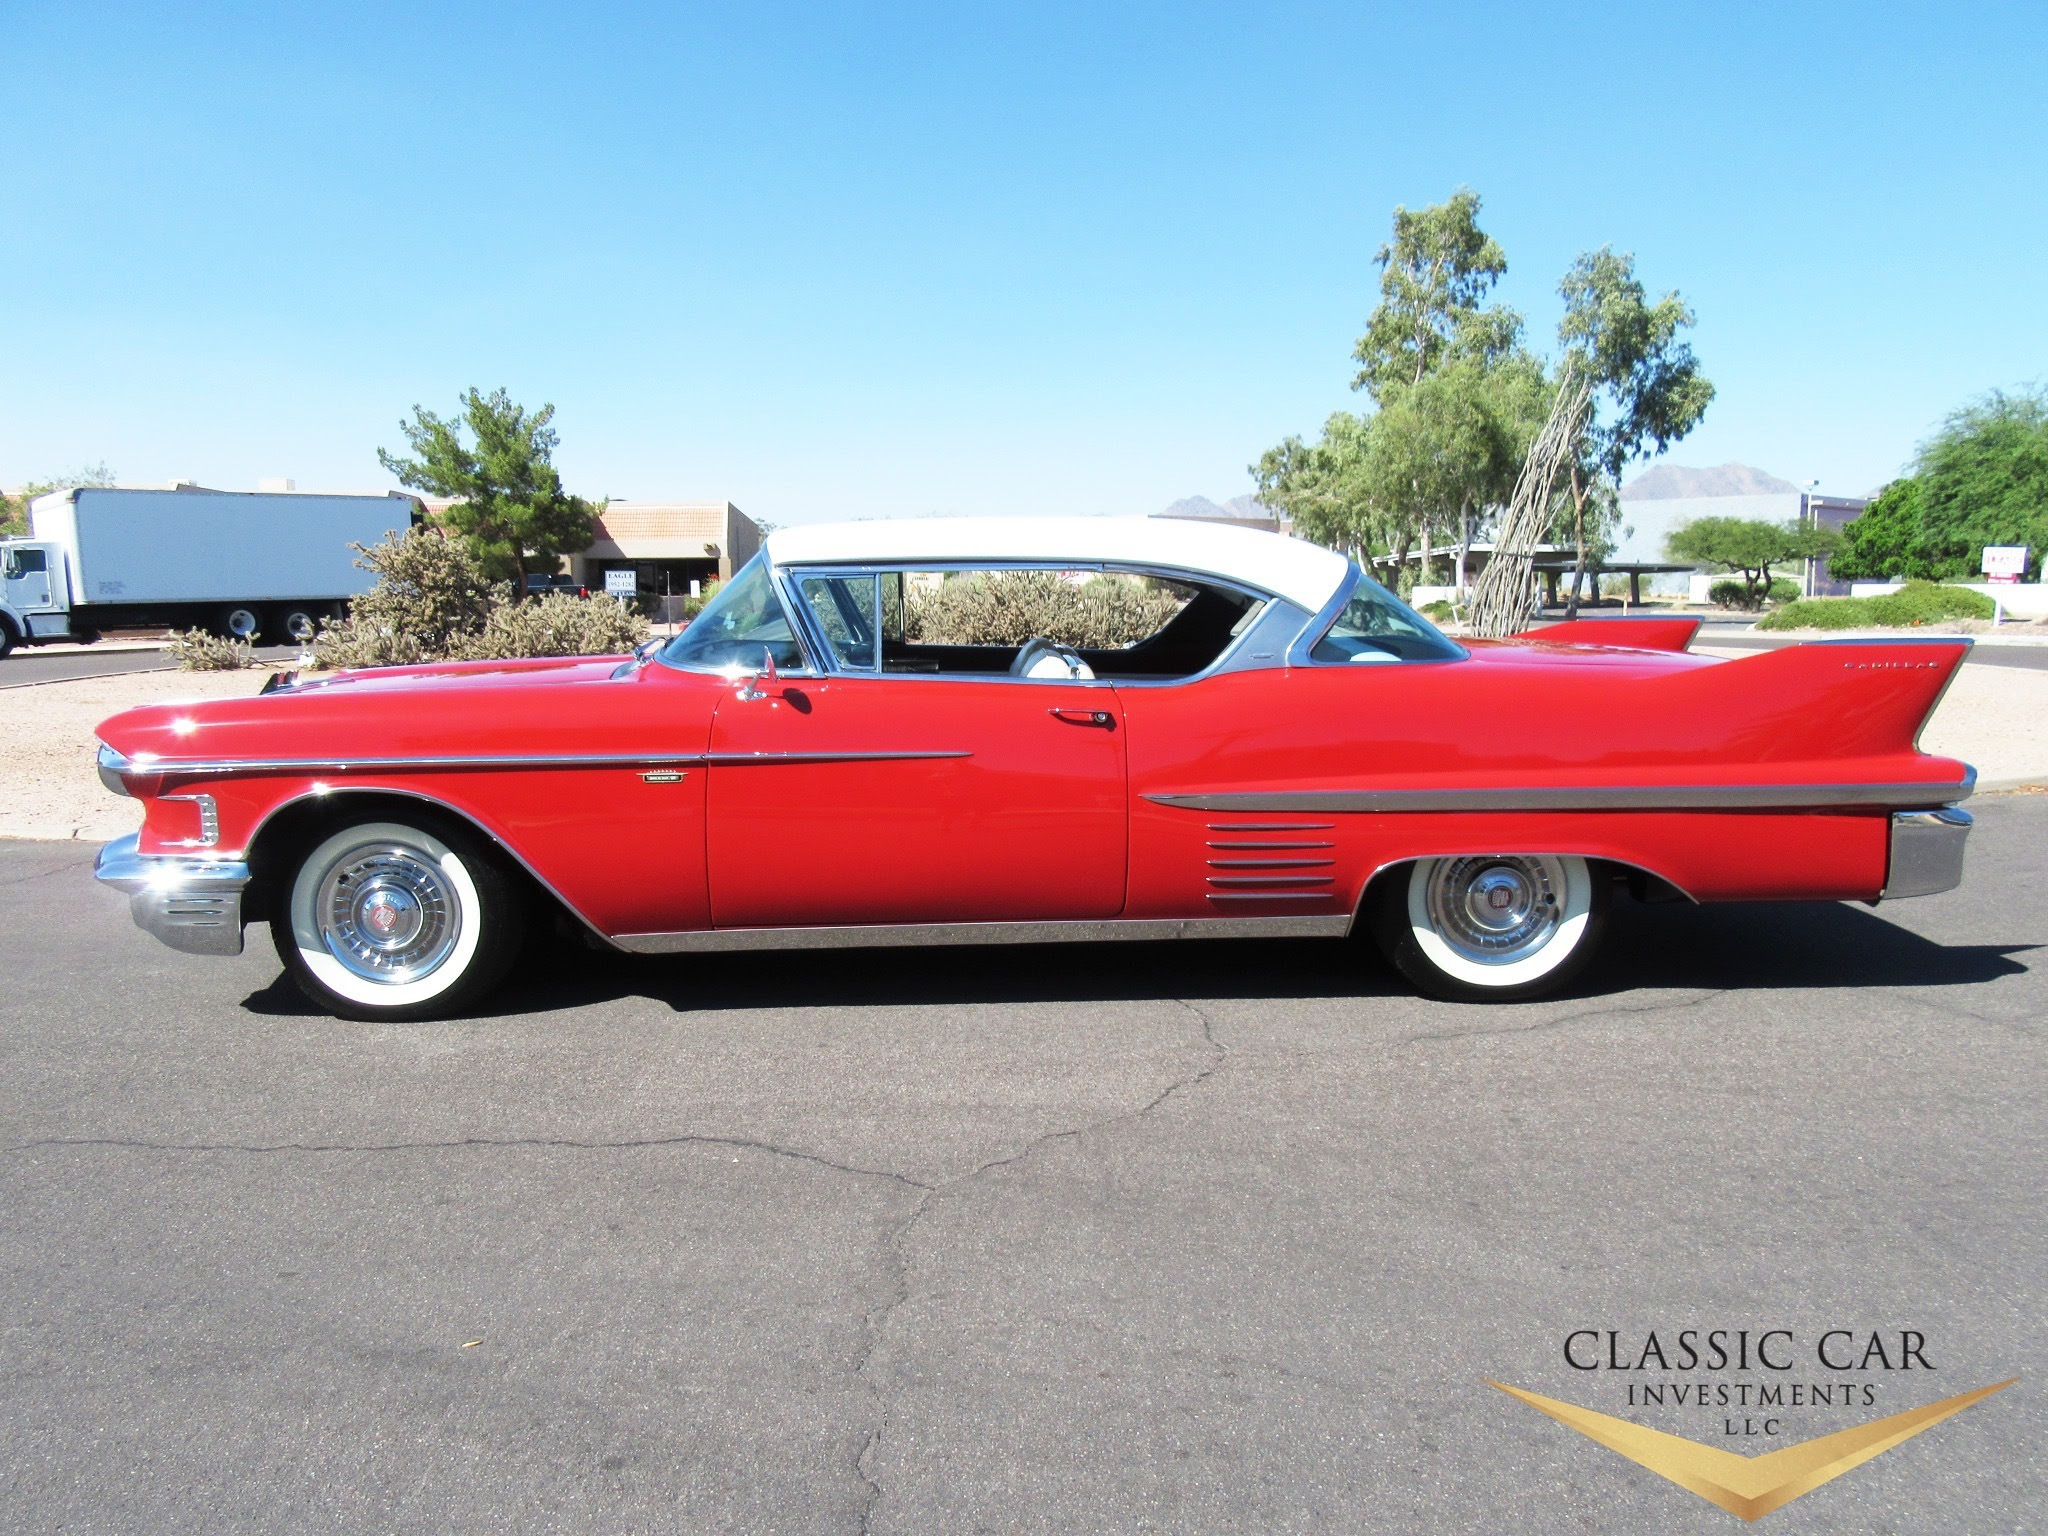 1958 Cadillac Coupe DeVille | Classic Car Investments, LLC